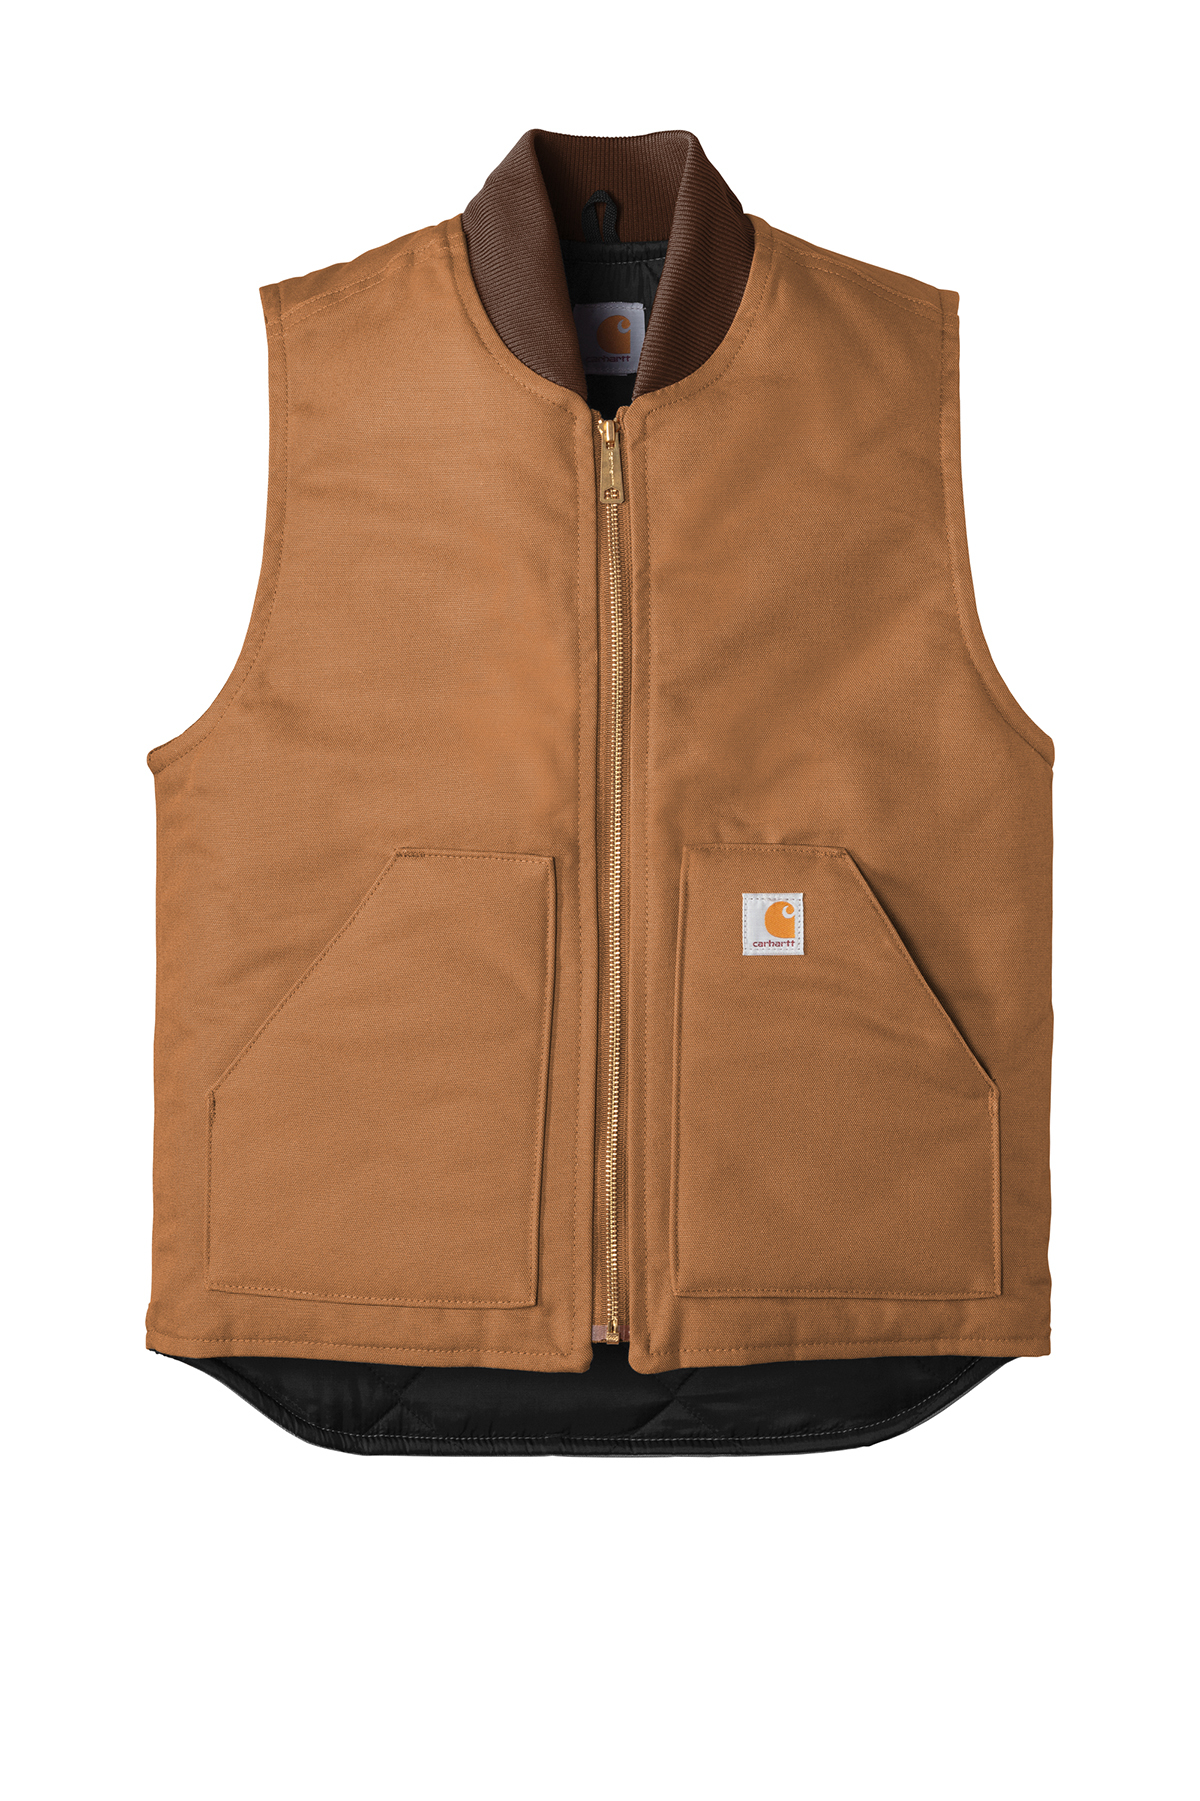 76a9d04bc3 ... Vests; Carhartt ® Duck Vest. A maximum of 8 logos have been uploaded.  Please remove a logo from My Logos to continue